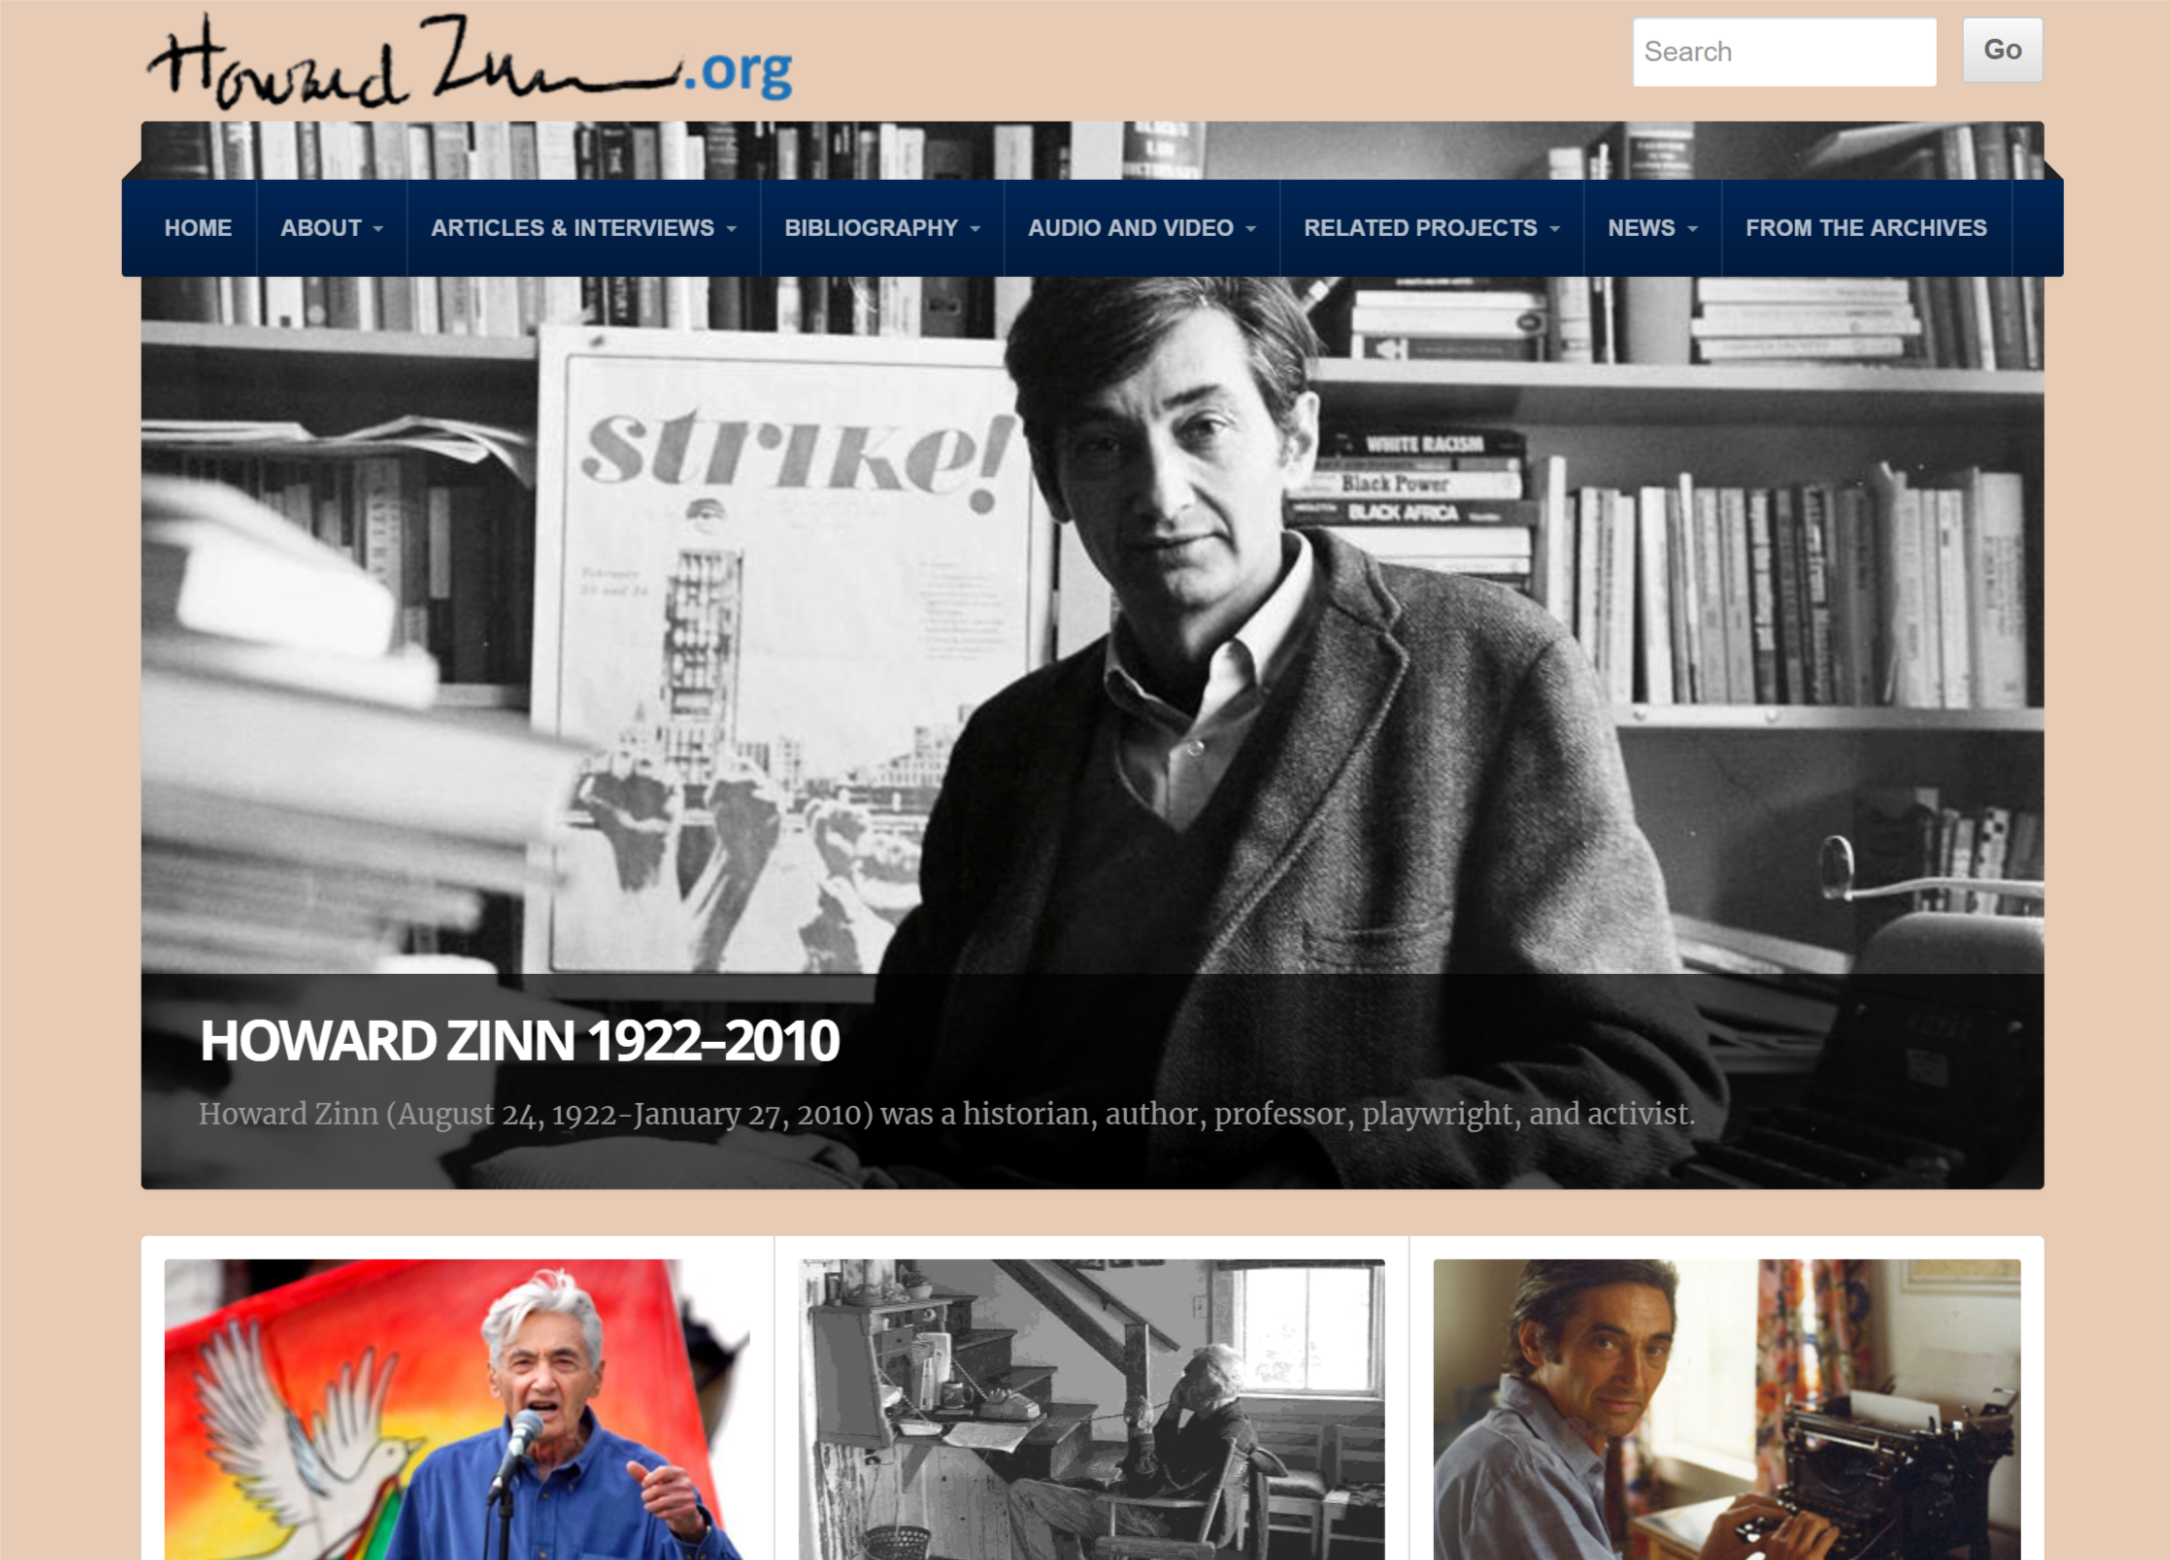 Homepage of the Howard Zinn website.